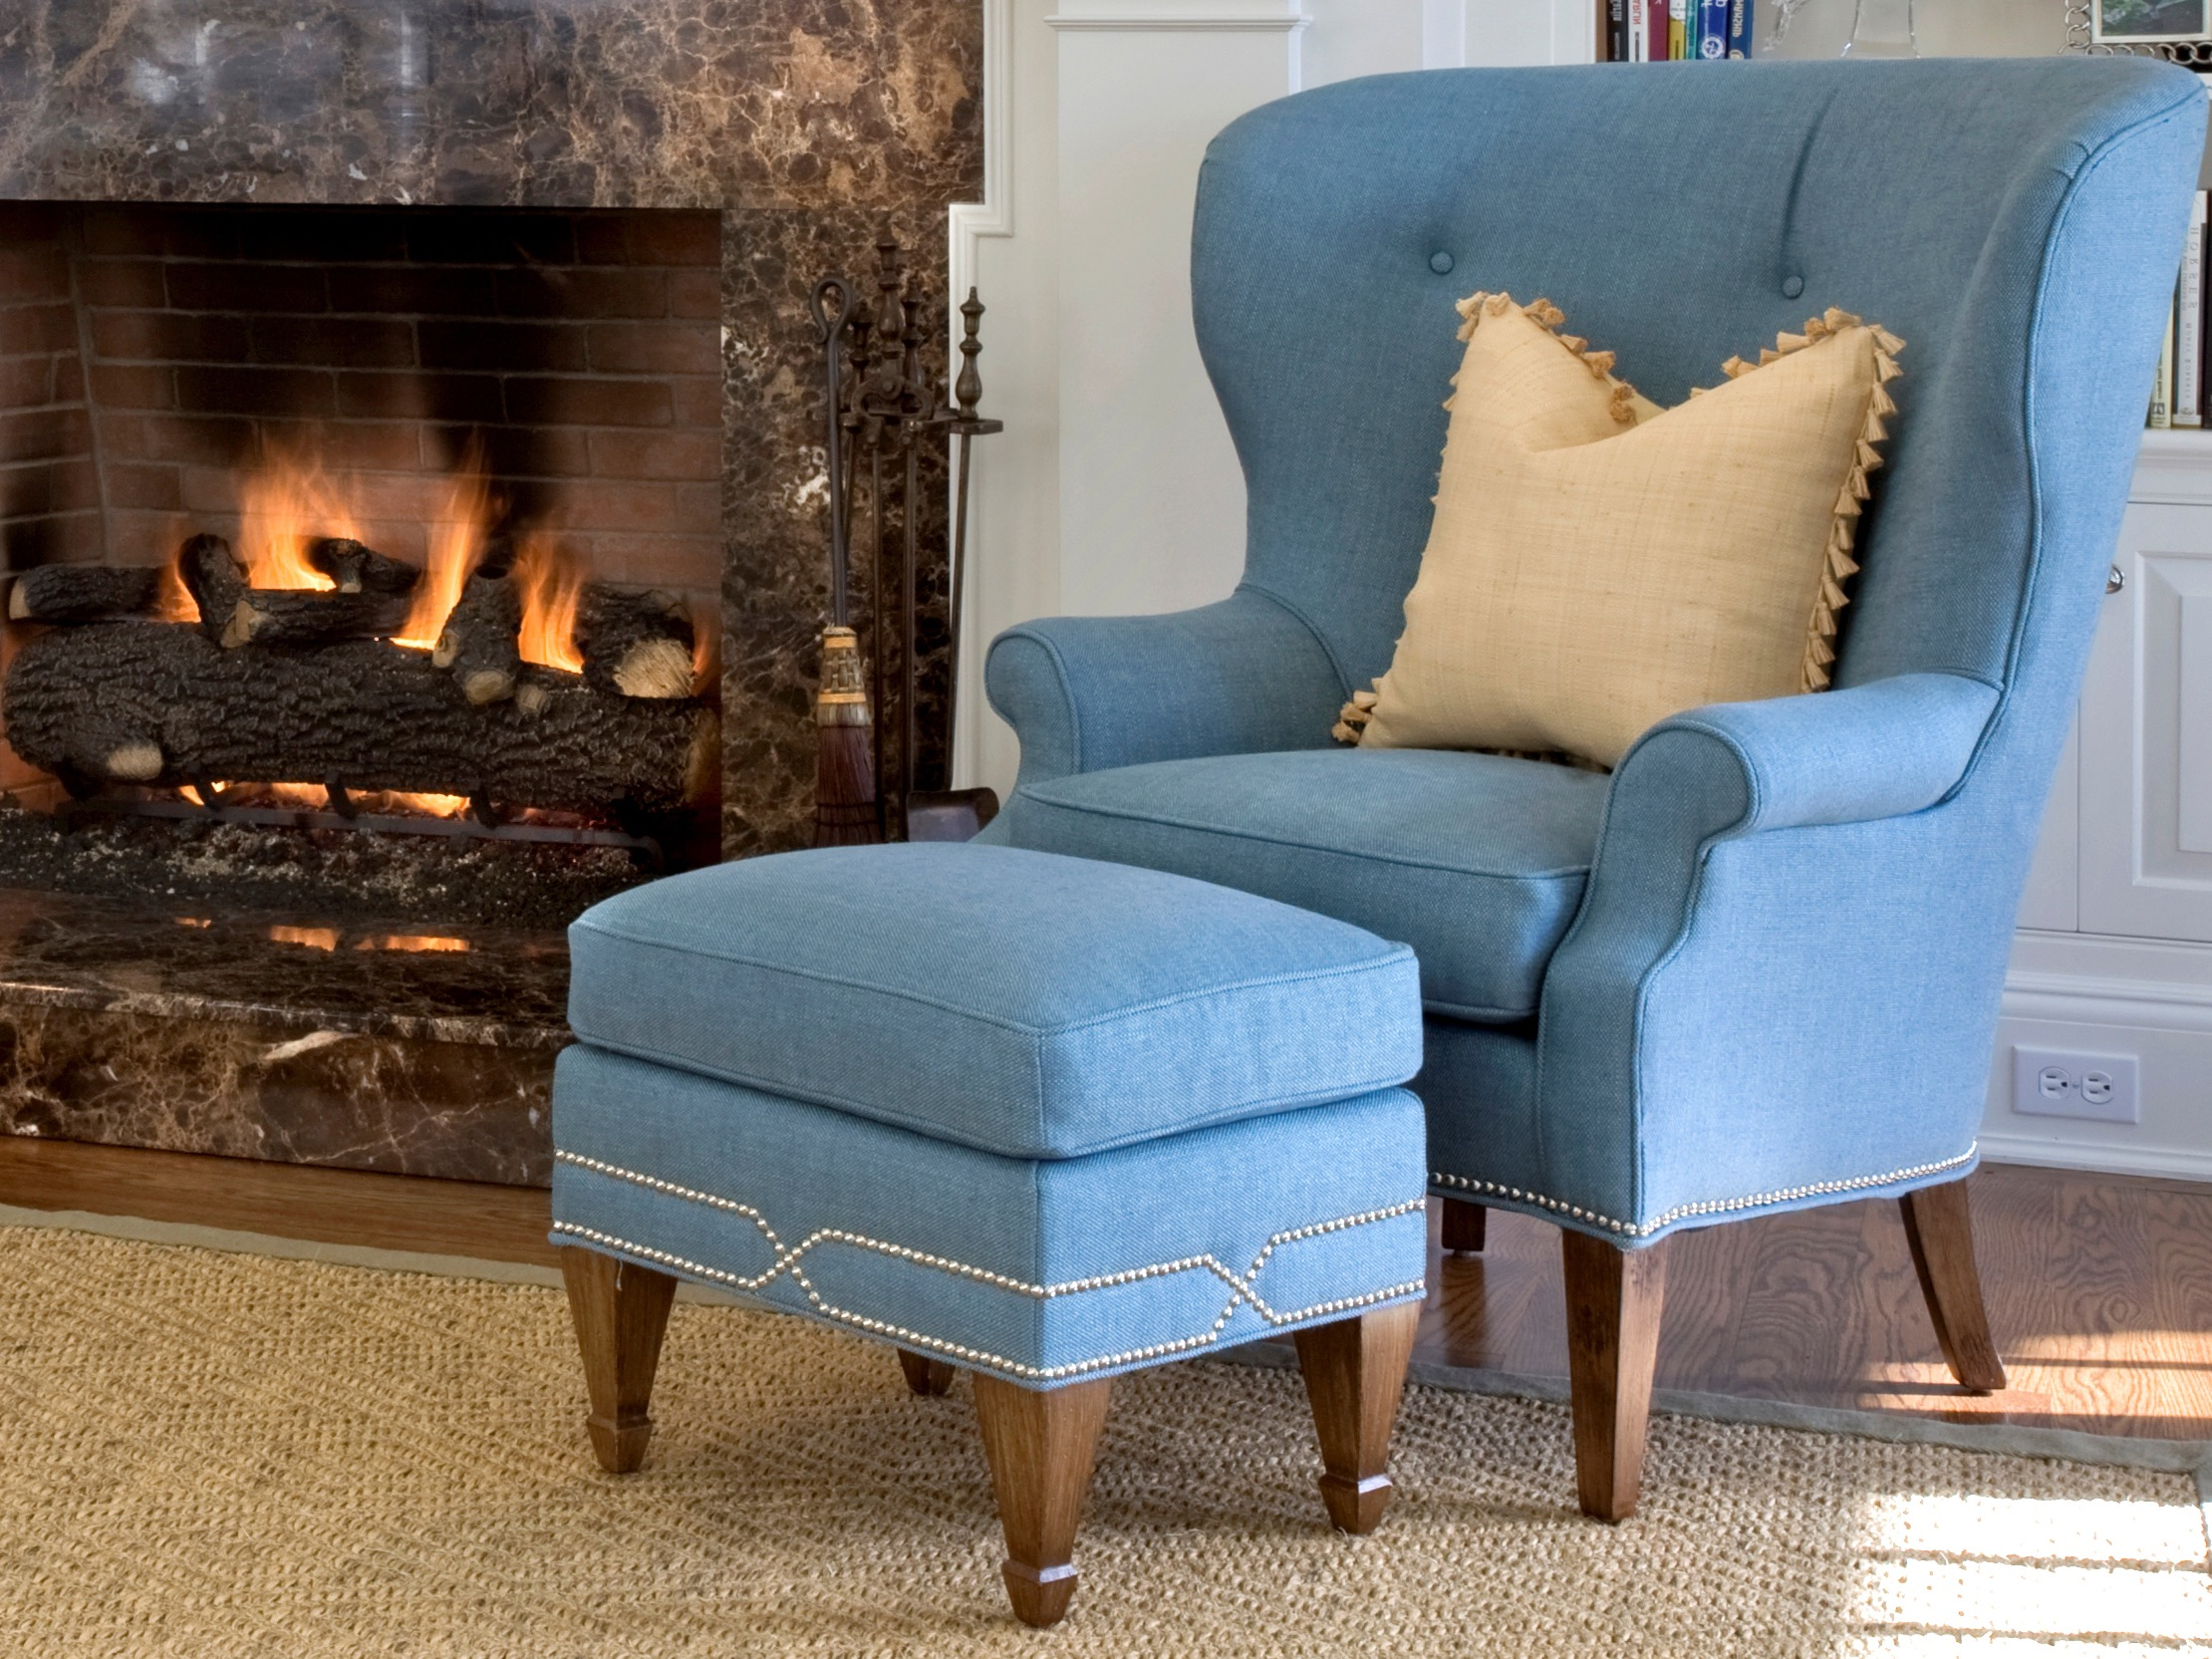 Cozy Queen Anne Chair For Living Room  (Image 4 of 11)